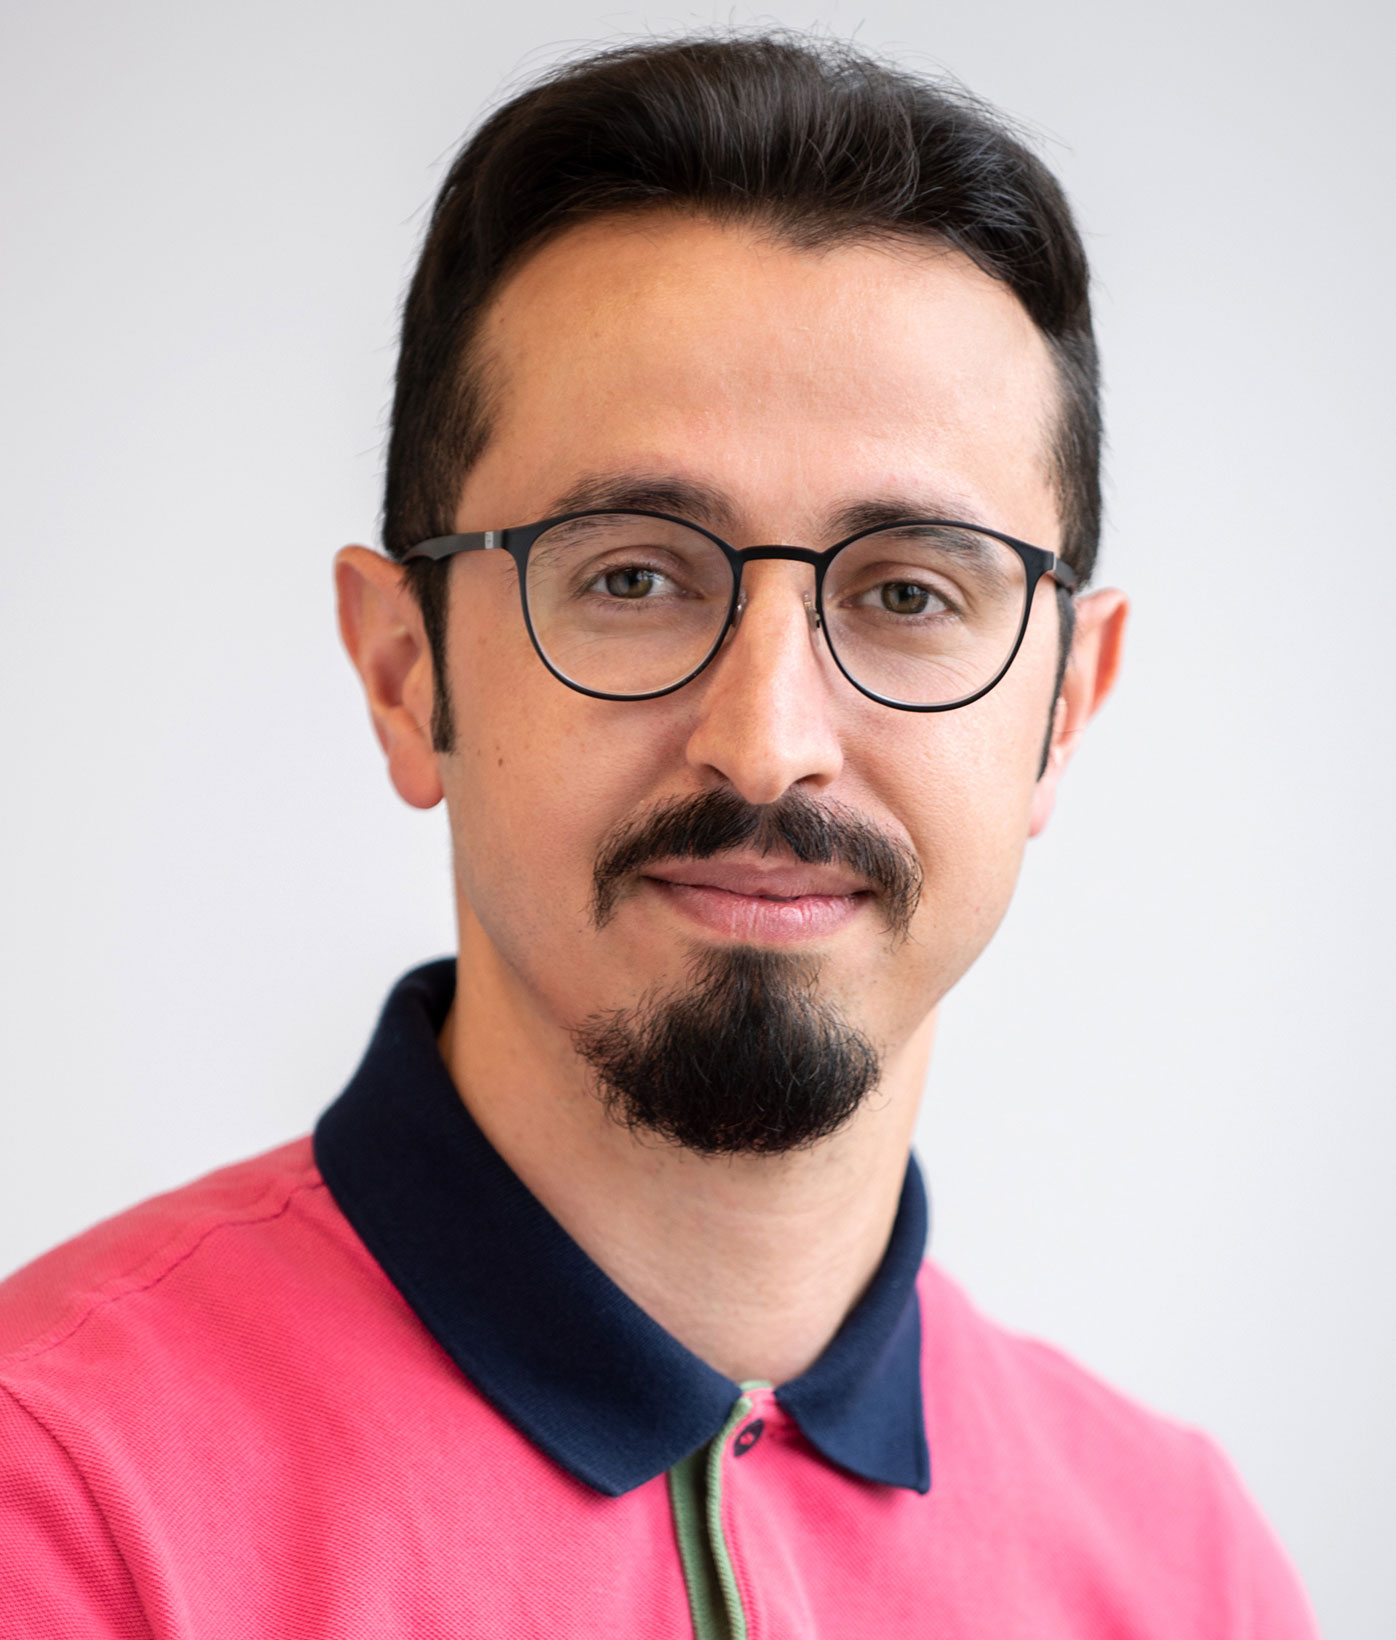 Saeed Hasanzadeh Vayghan, Ph.D. student in Hospitality Administration